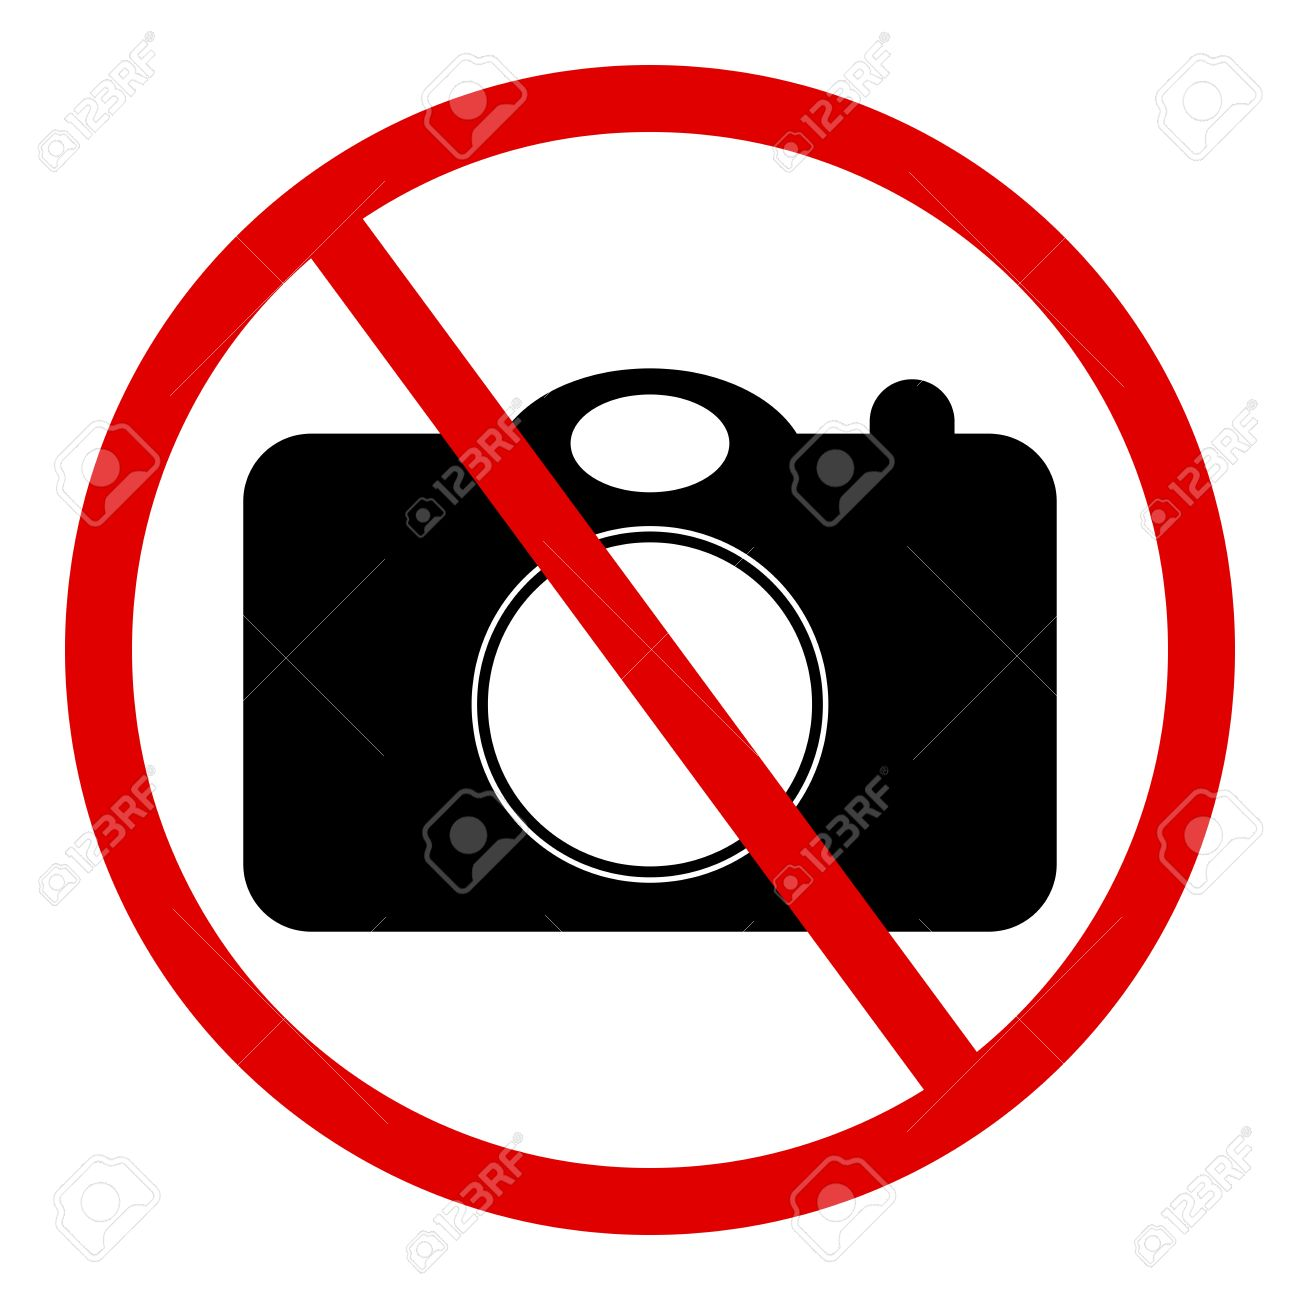 Circle No Photography Sign Isolated On White Background Stock ...